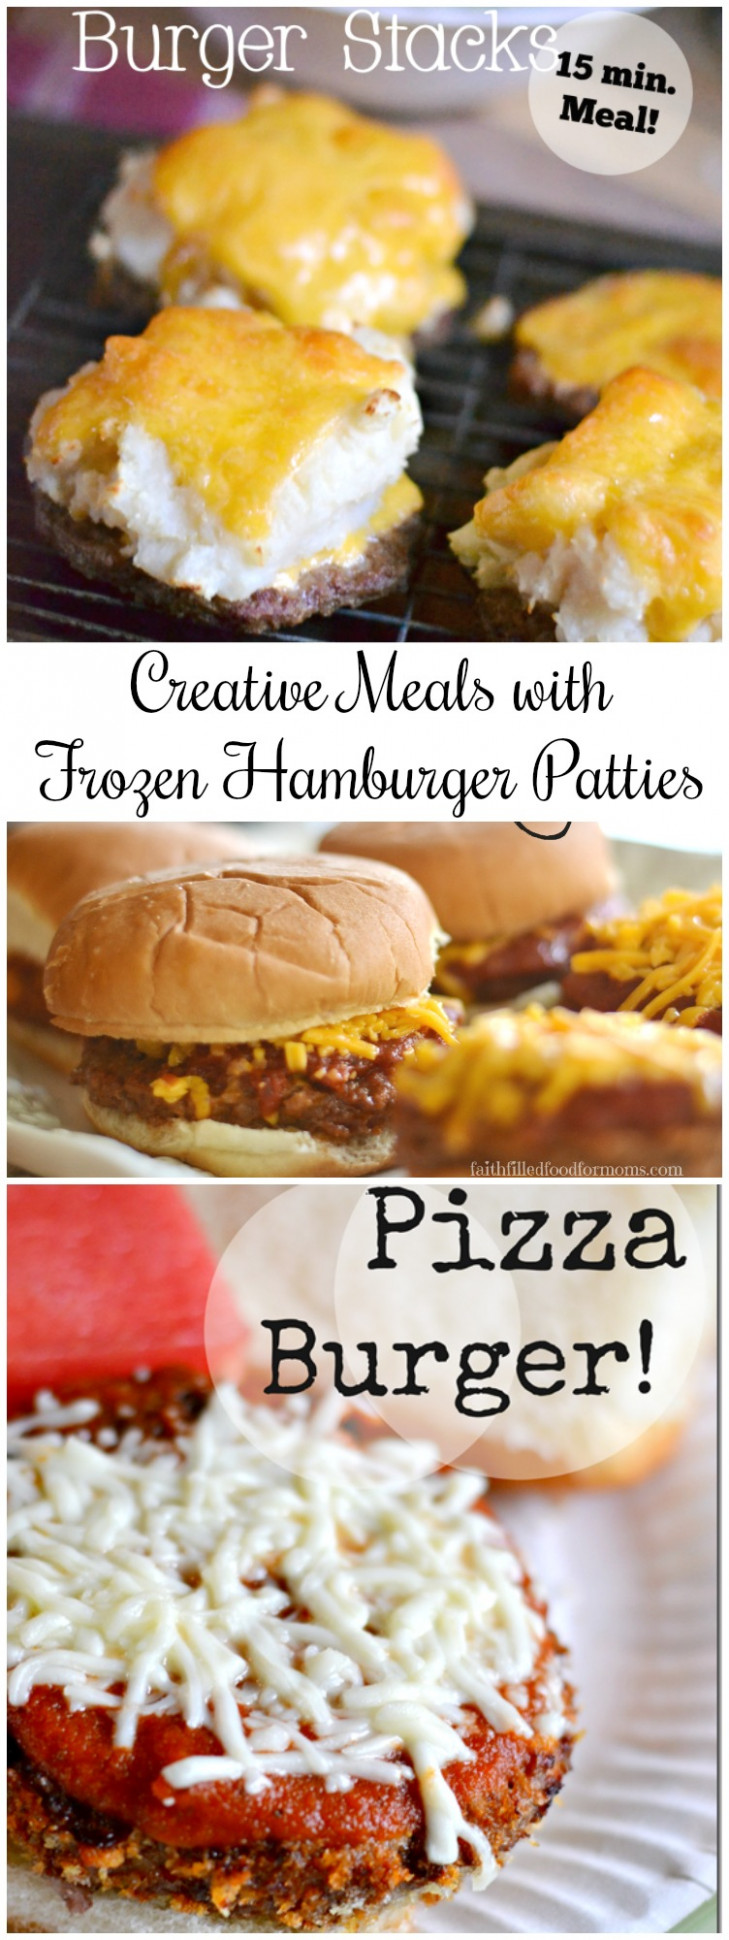 6 Easy Meals Using Frozen Hamburger Patties • Faith Filled ...